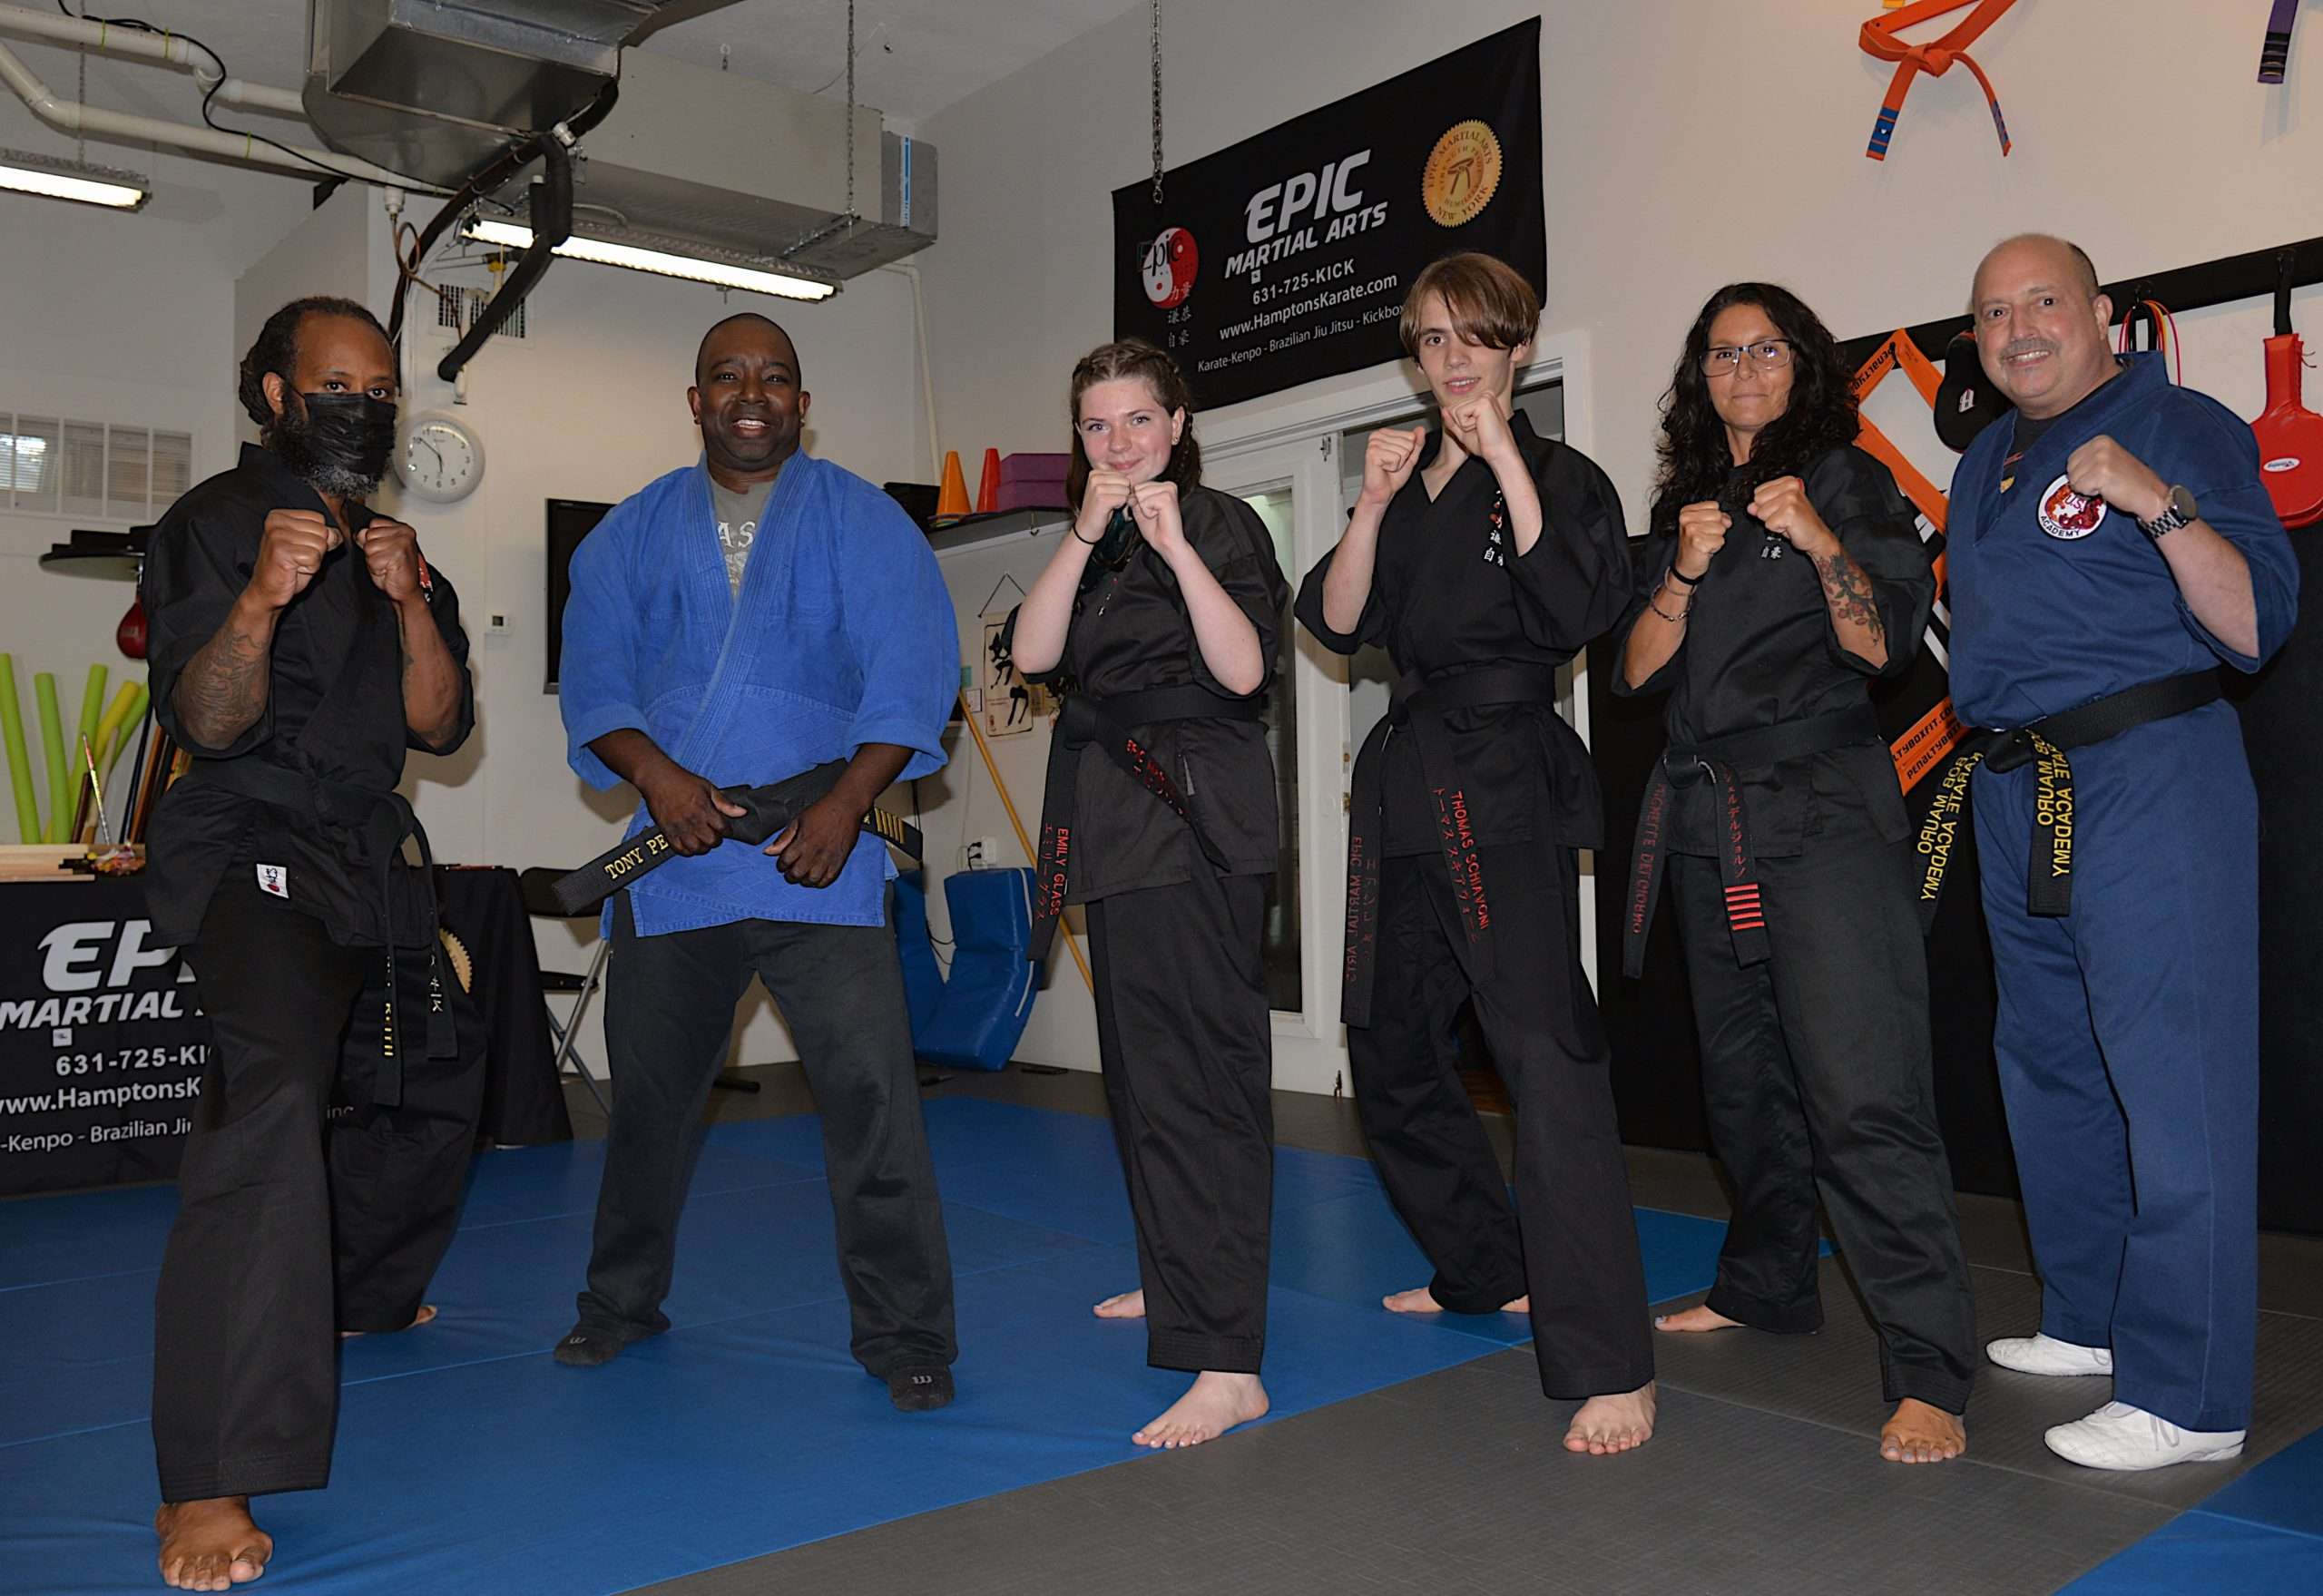 Senseis and instructors, from left, Terence Keith, Anthony Peters, Emily Glass, Thomas Schiavoni, Michelle Del Giorno and Robert Mauro.